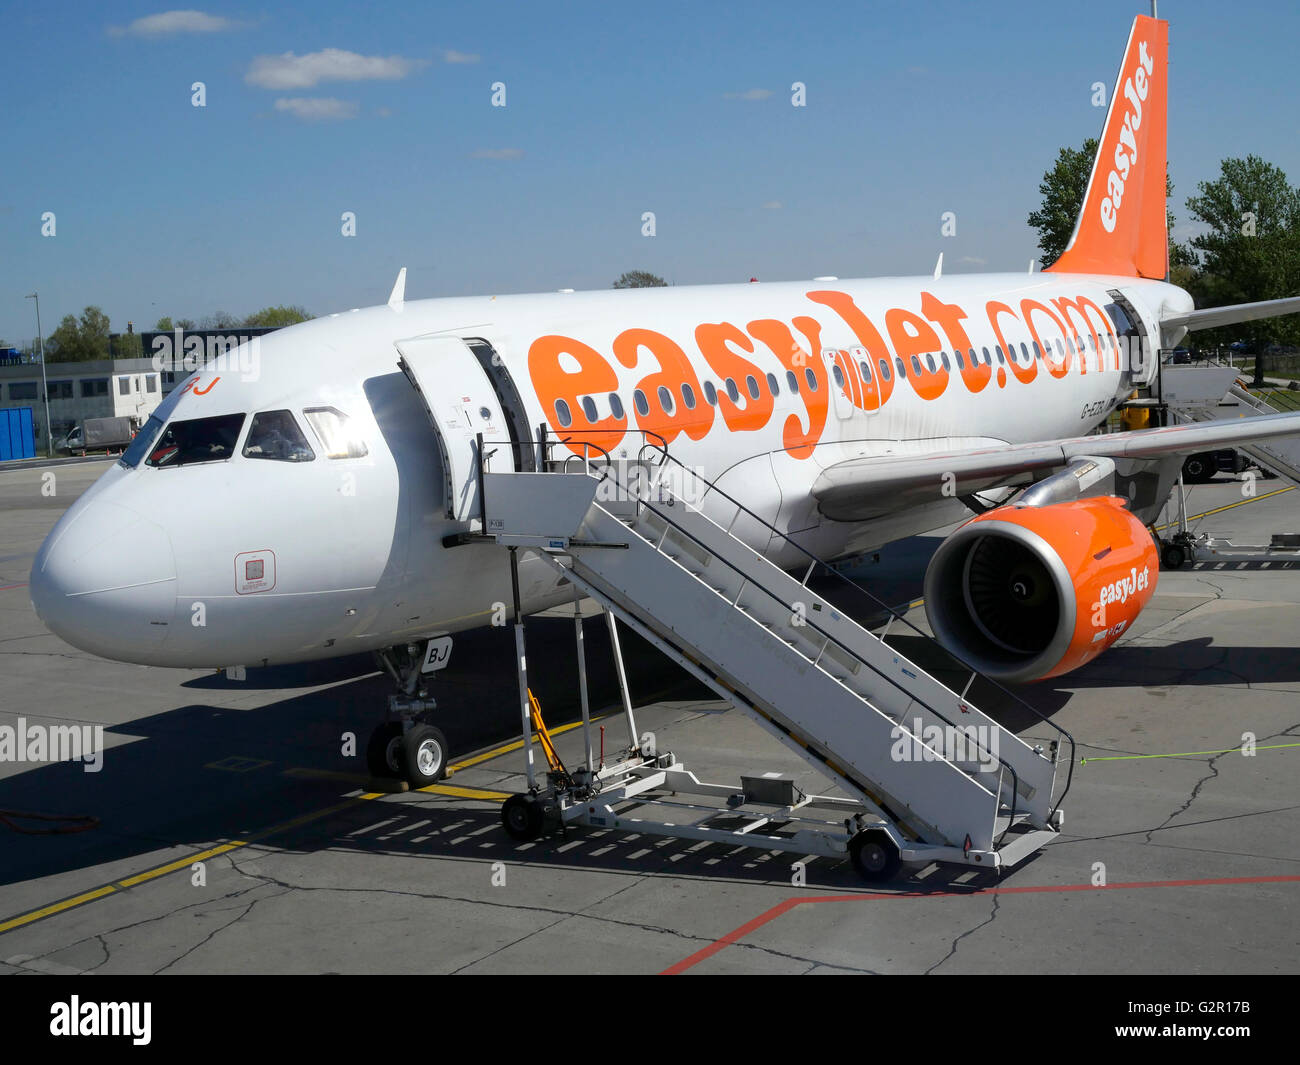 Easyjet Airbus A320-214 on the apron at Berlin Schonefeld, Berlin, Germany, Europe. - Stock Image